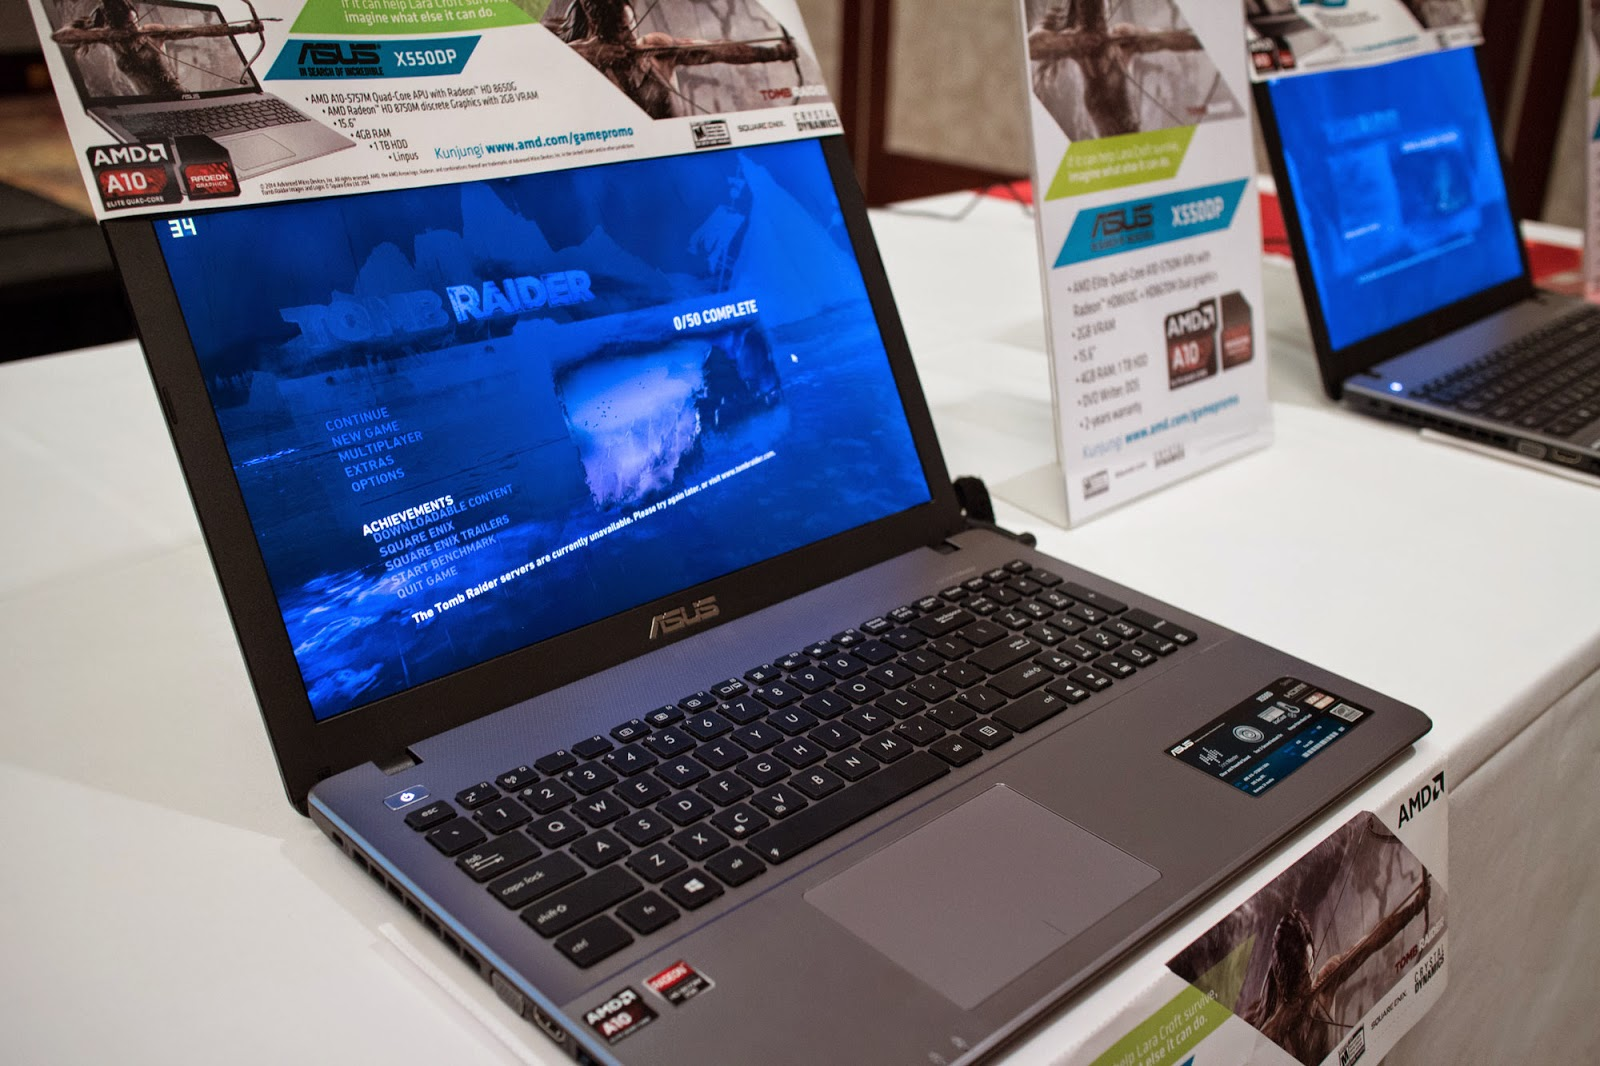 ASUS X550DP Laptop Gaming Murah